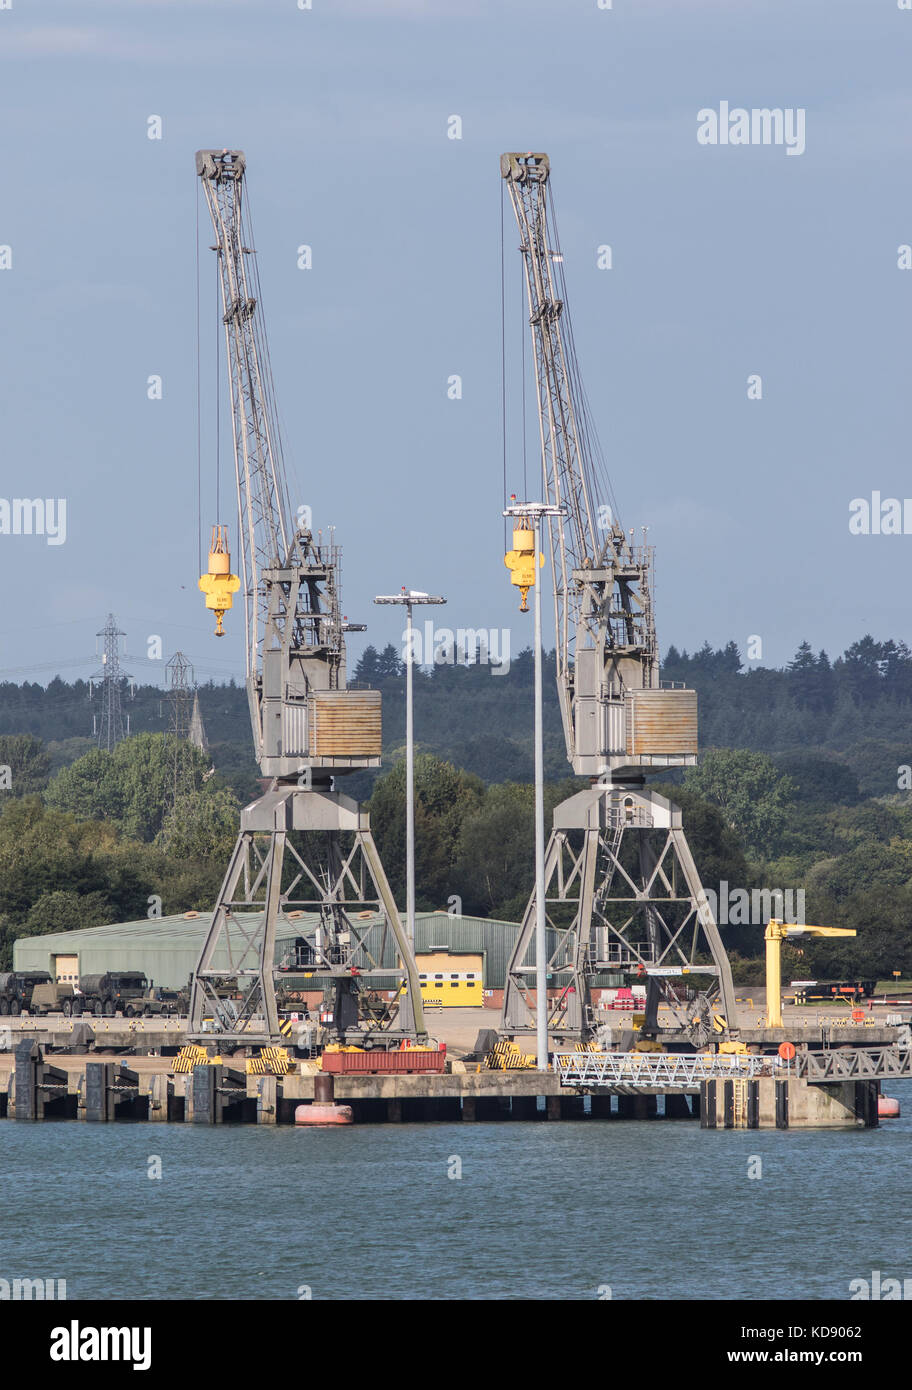 Two Dock side in Southampton against a blue sky - Stock Image